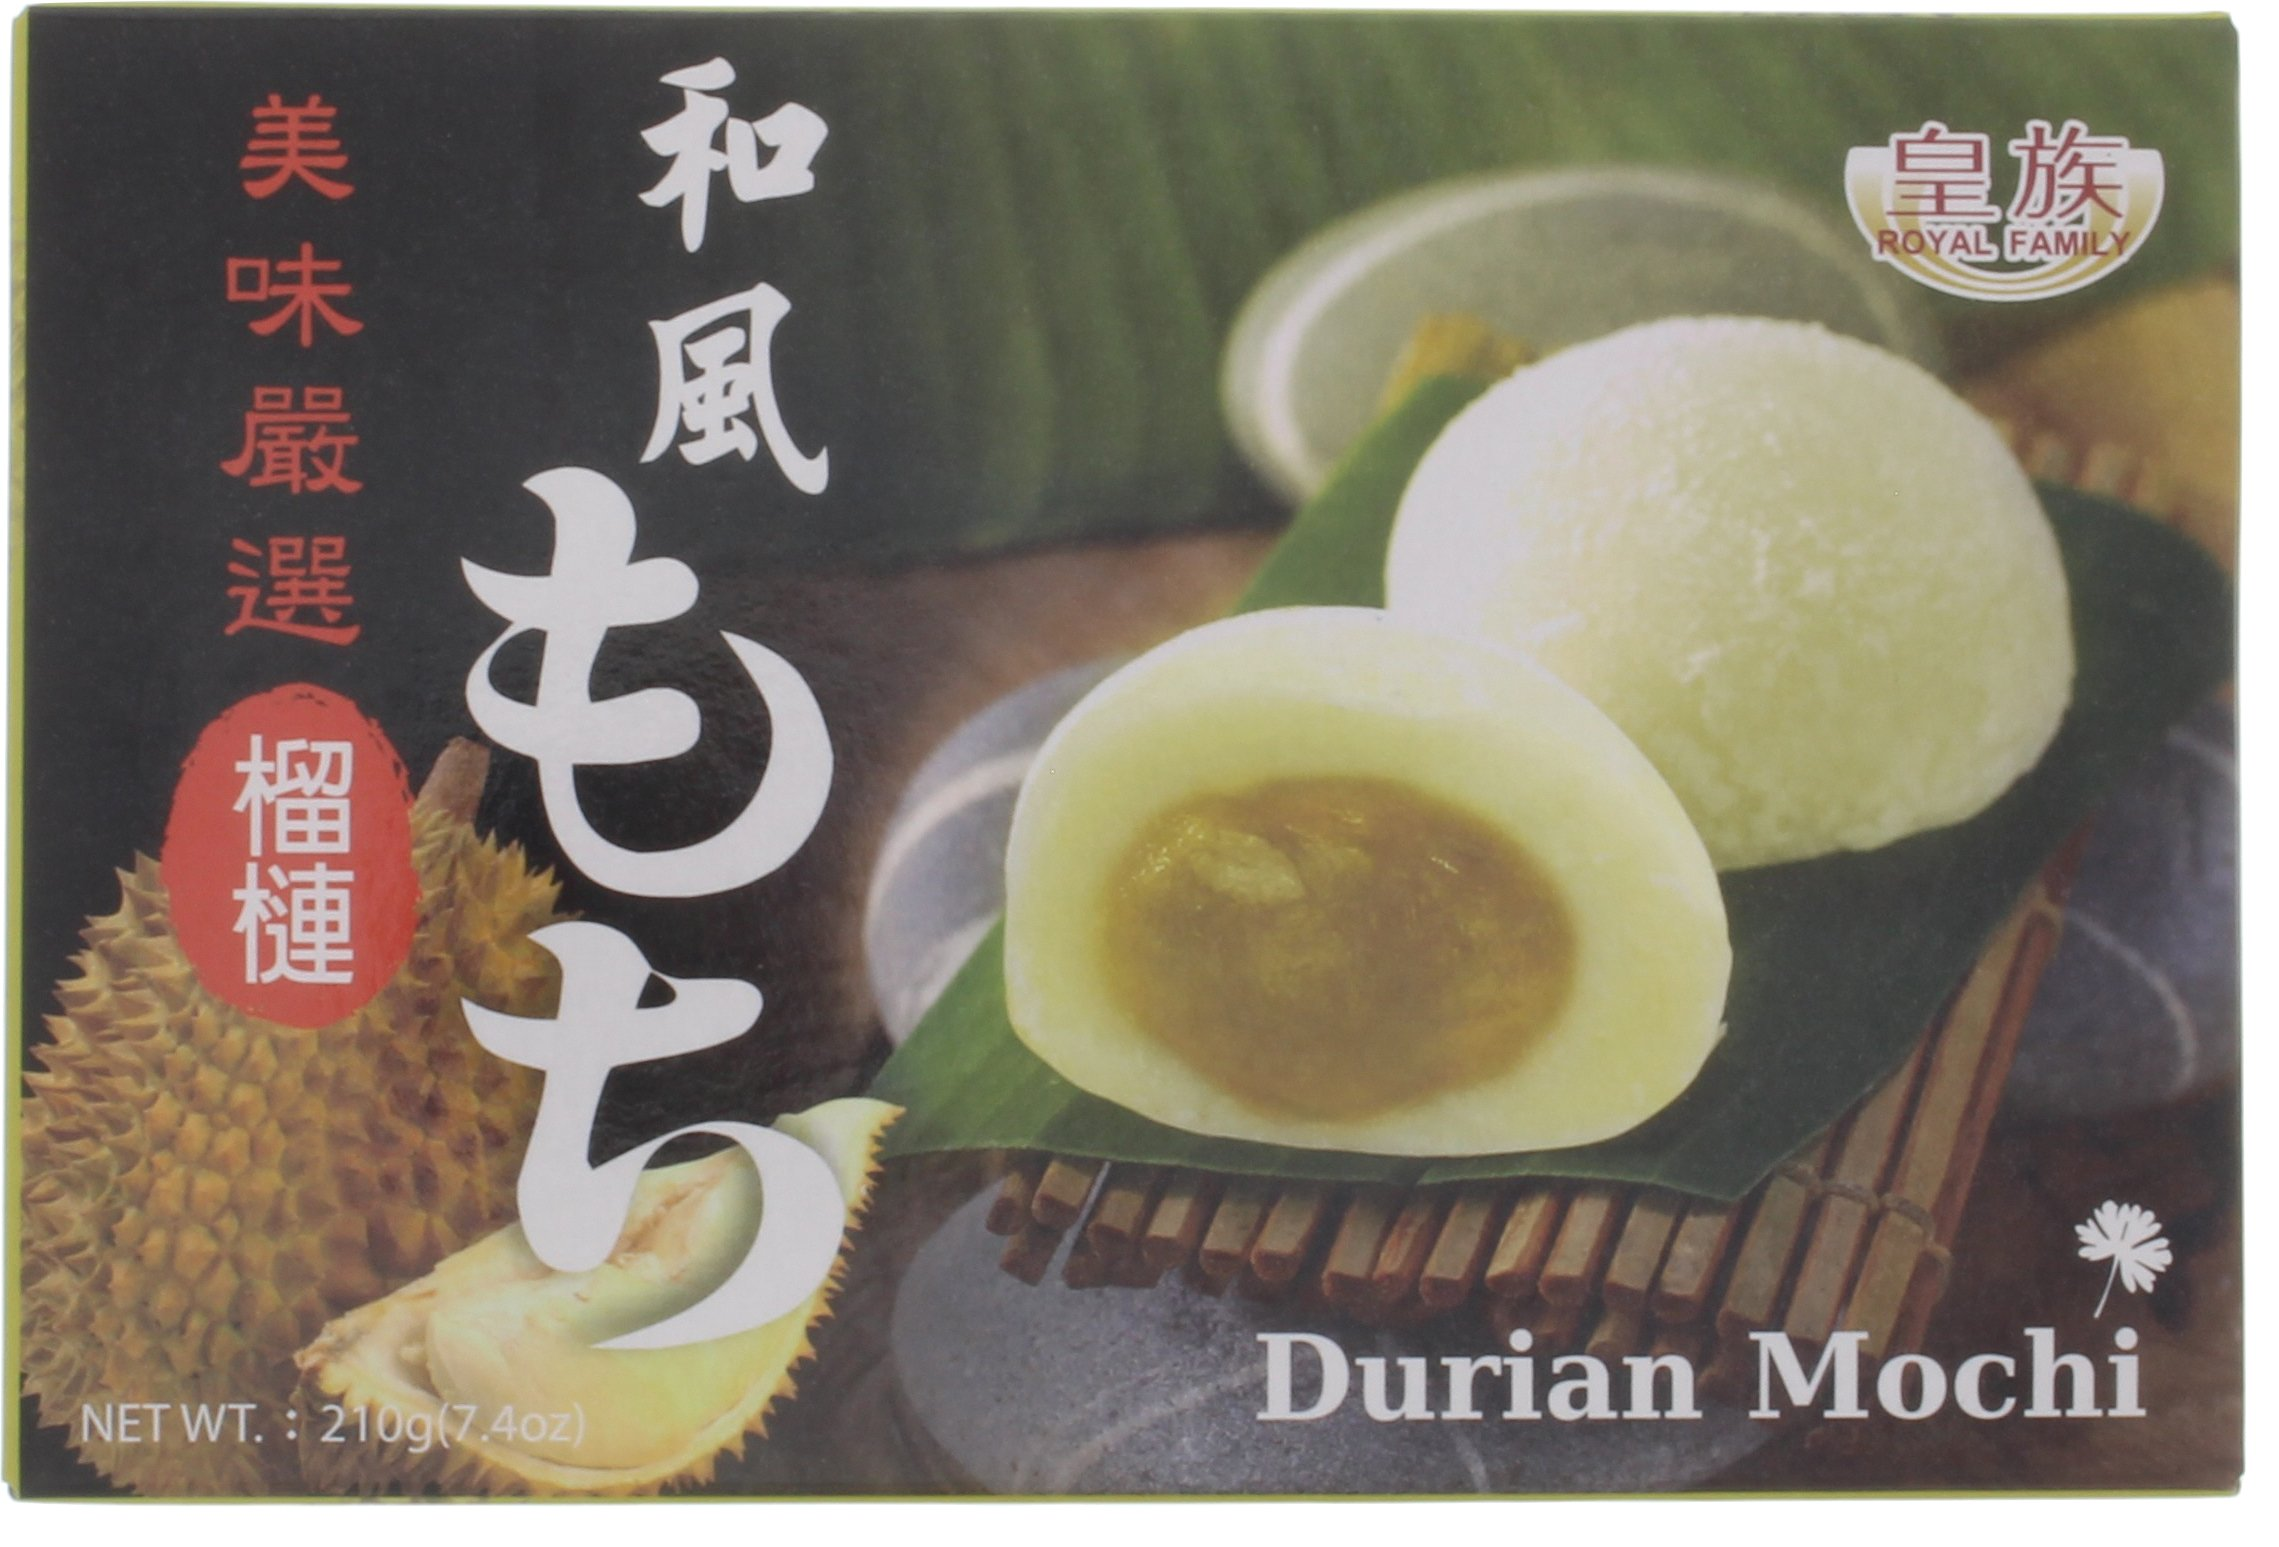 Royal Family Japanese Mochi Durian, 7.4 oz (Pack of 4)